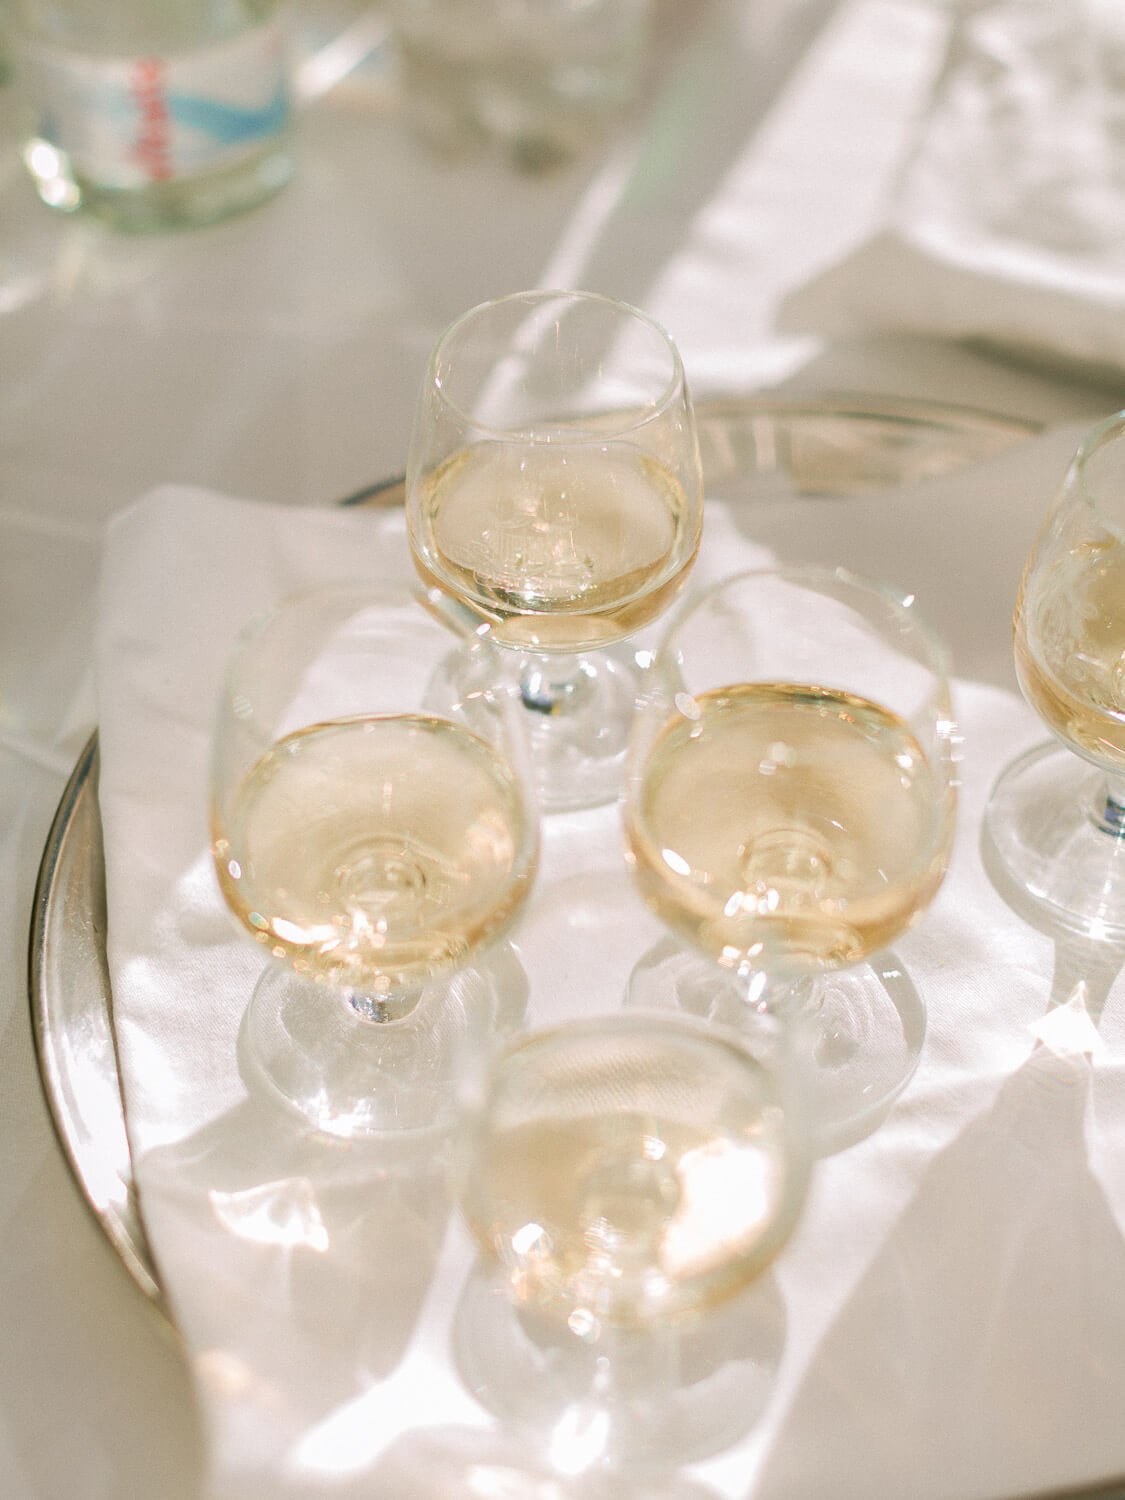 white wine glasses close up during wedding cocktail by Portugal Wedding Photographer